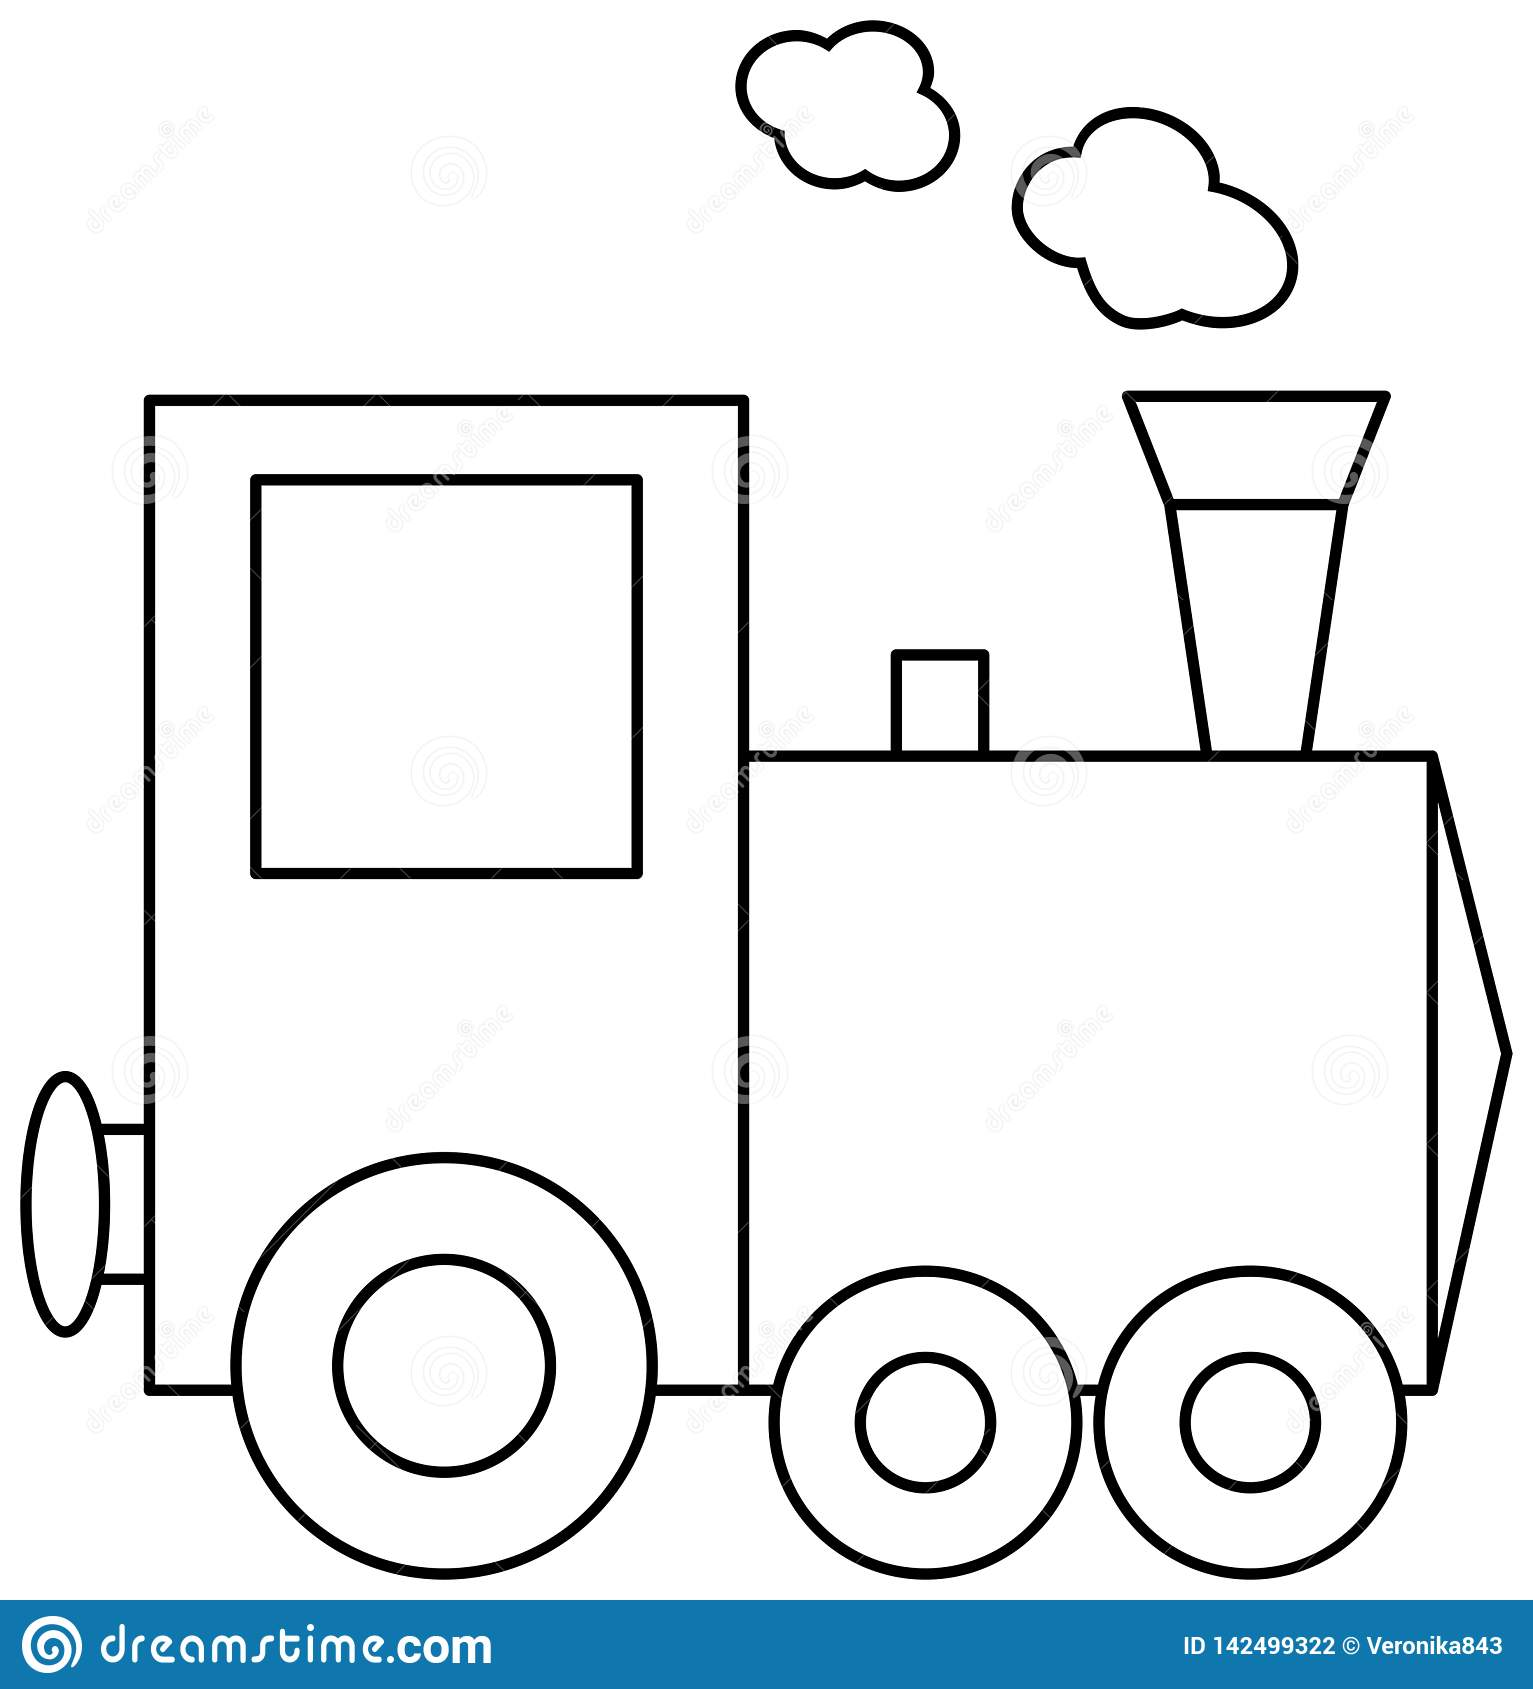 Train coloring book page stock vector. Illustration of public ...